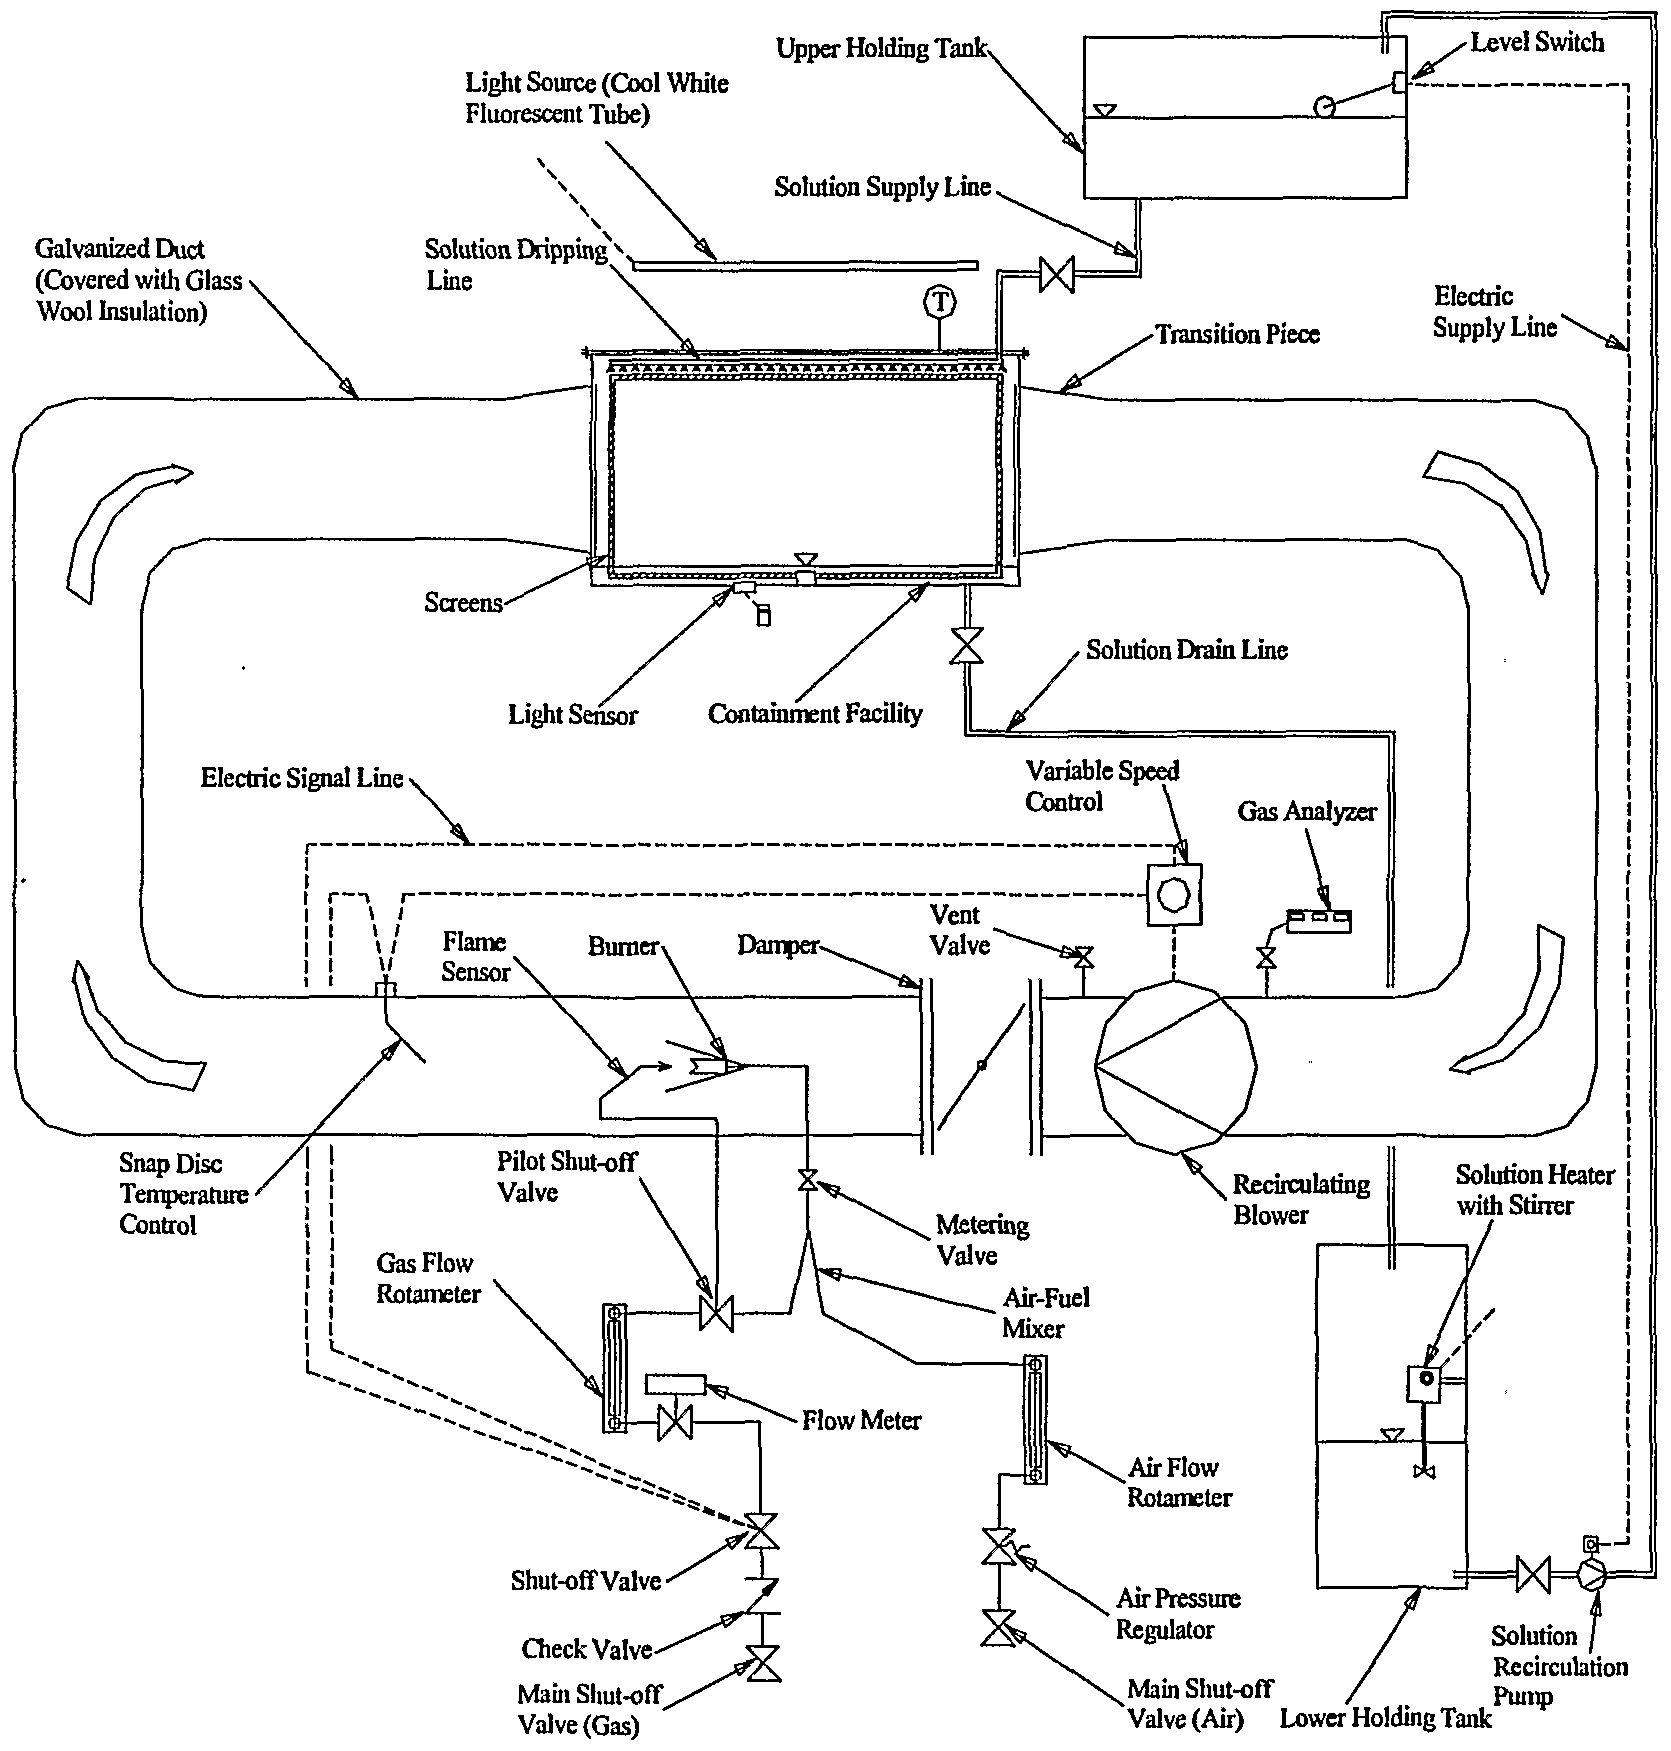 wo2002005932a1 photosynthetic carbon dioxide mitigation Panasonic Wiring Diagram figure imgf000084 0001 figure 1 schematic